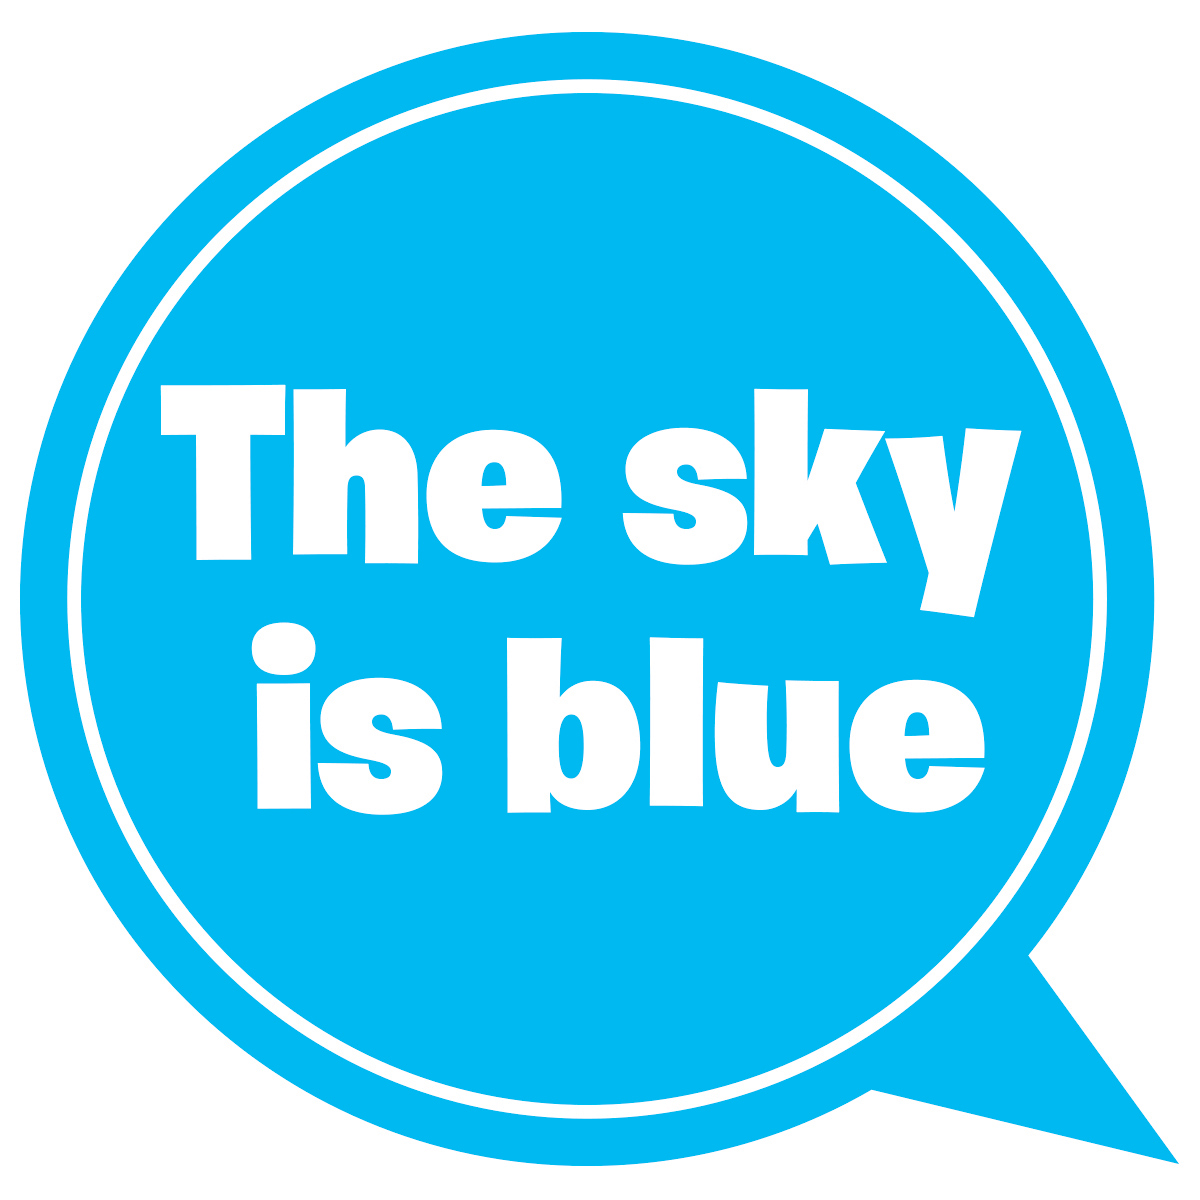 Dialog bubble containing the phrase 'The Sky is Blue'